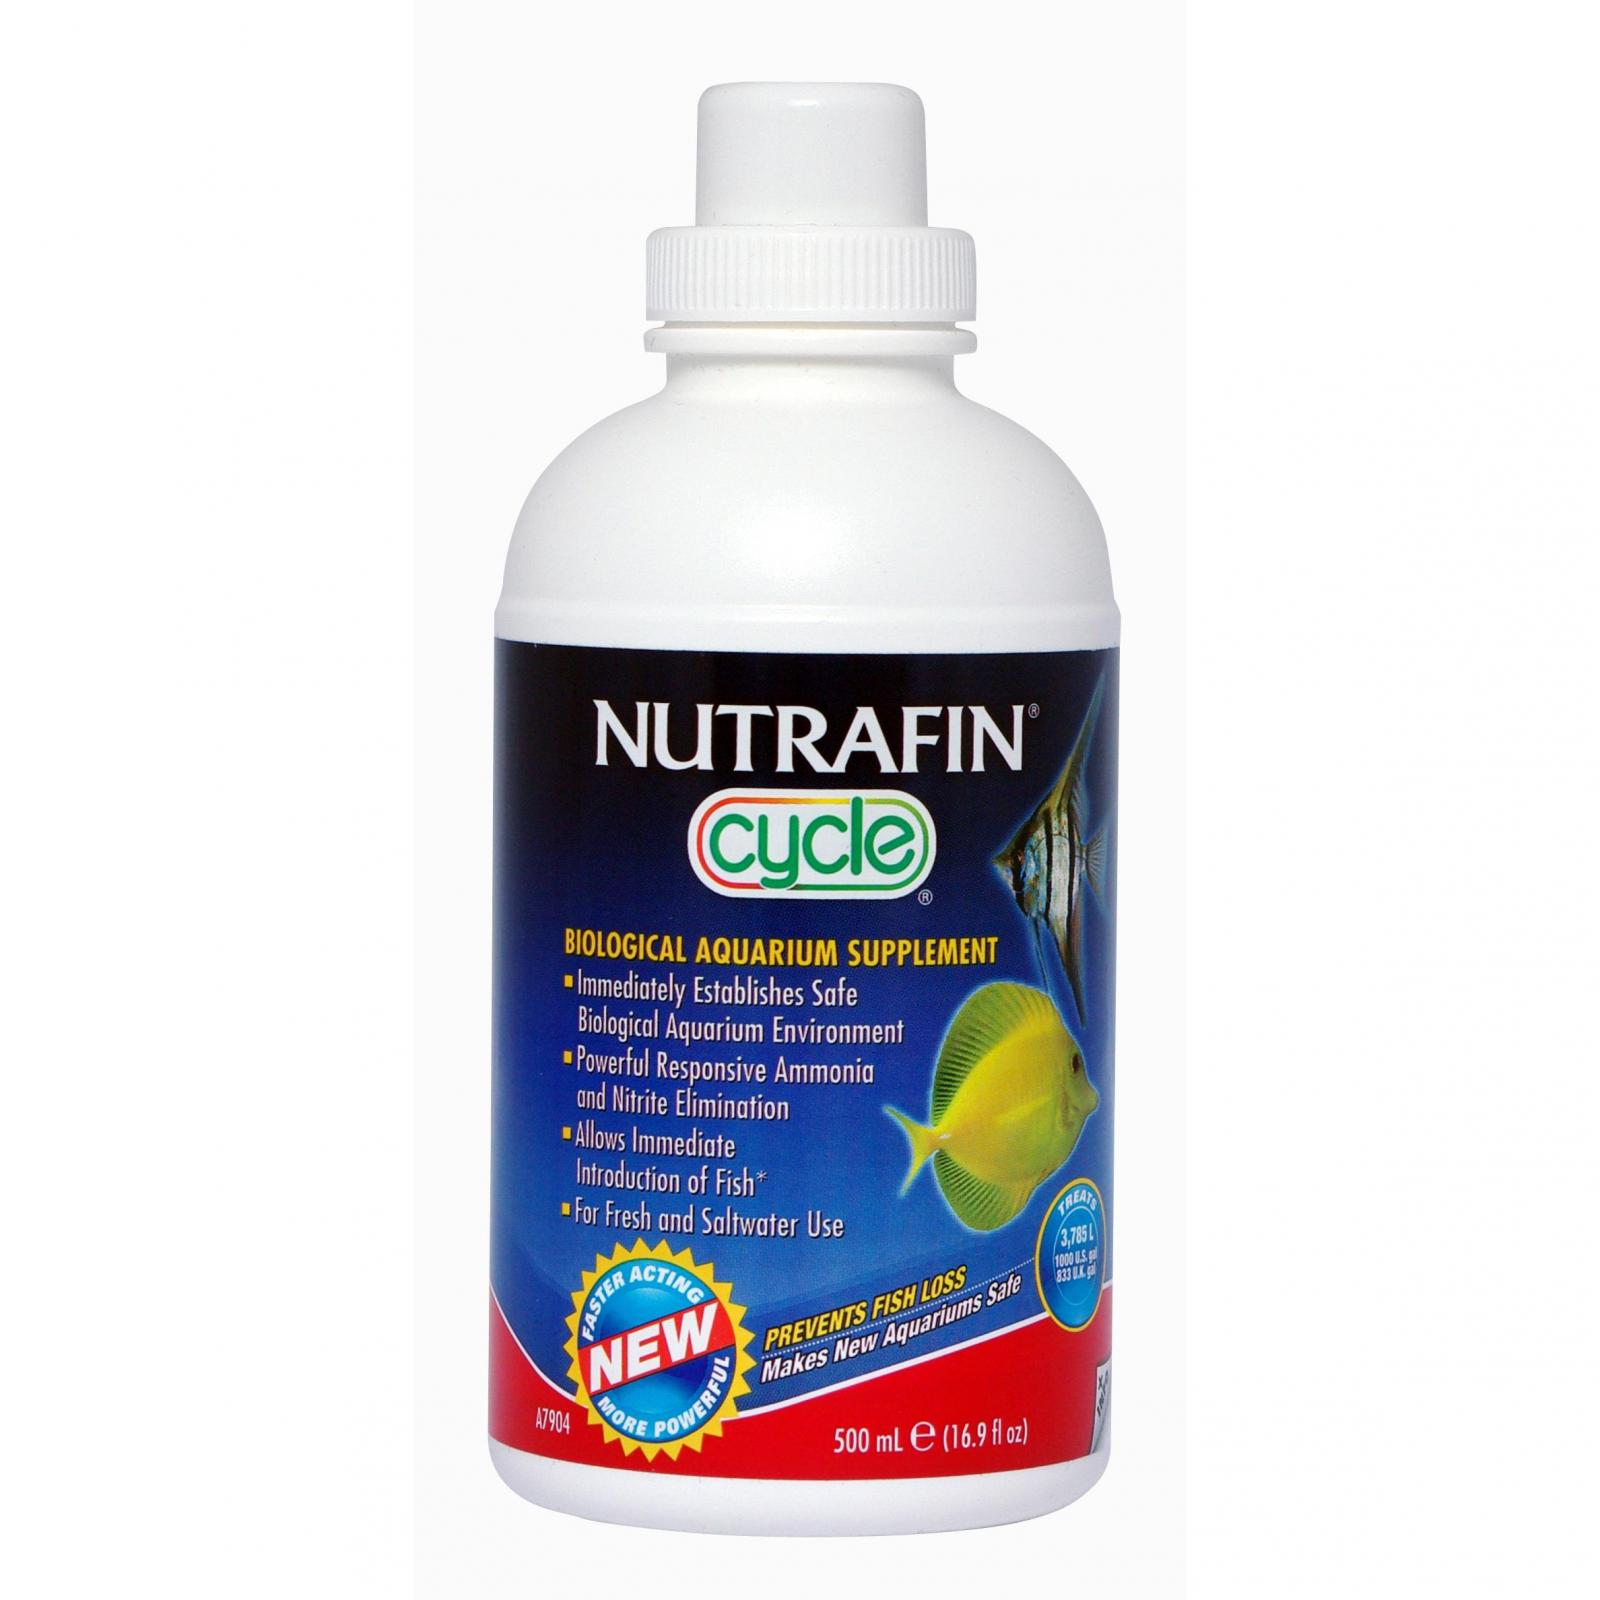 Nutrafin Nutrafin Cycle Biological Aqua rium Supplement